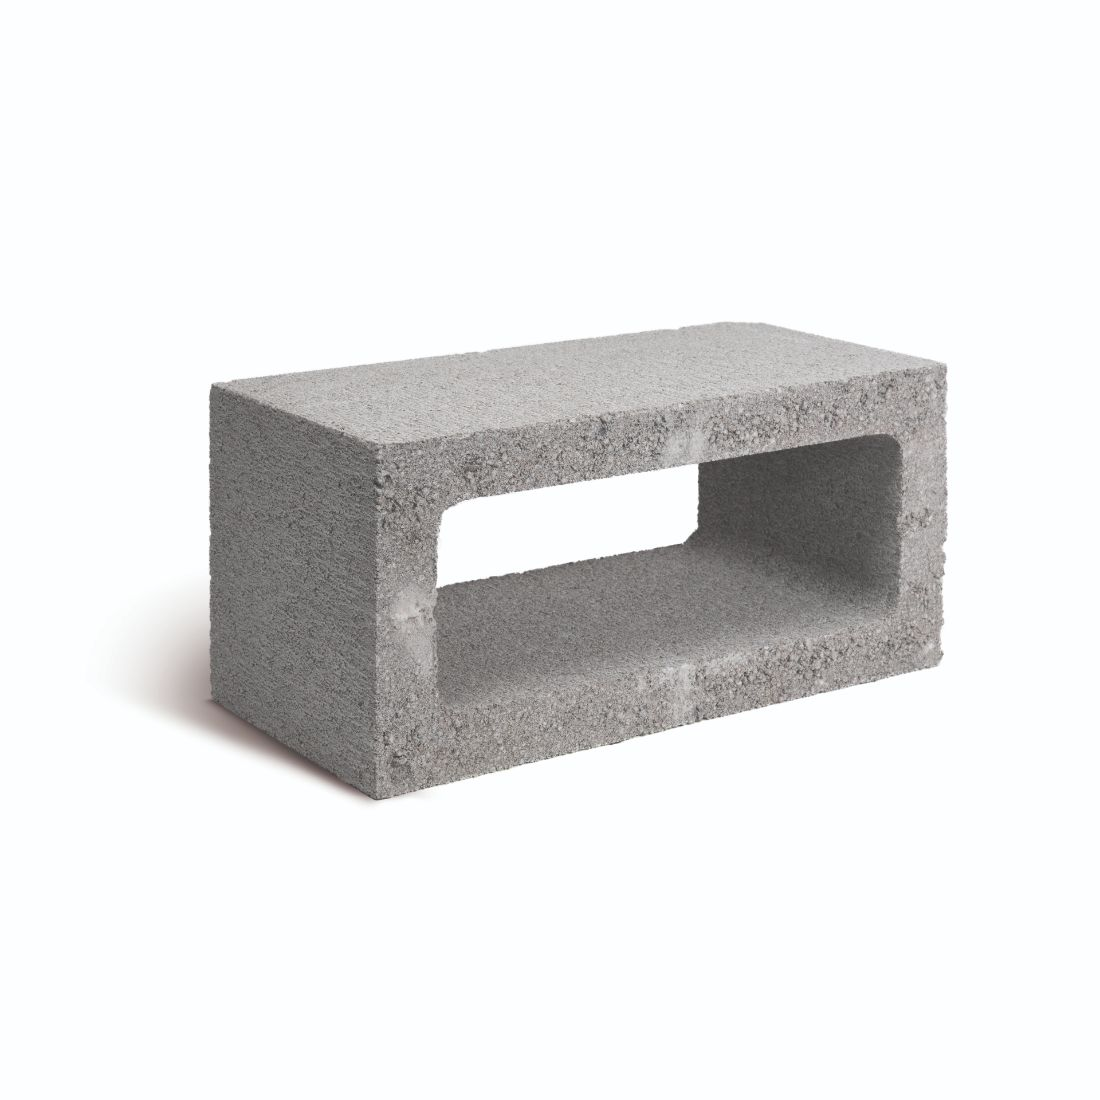 Standard Column Block 20 Series 230 x 190 x 50mm 20.30